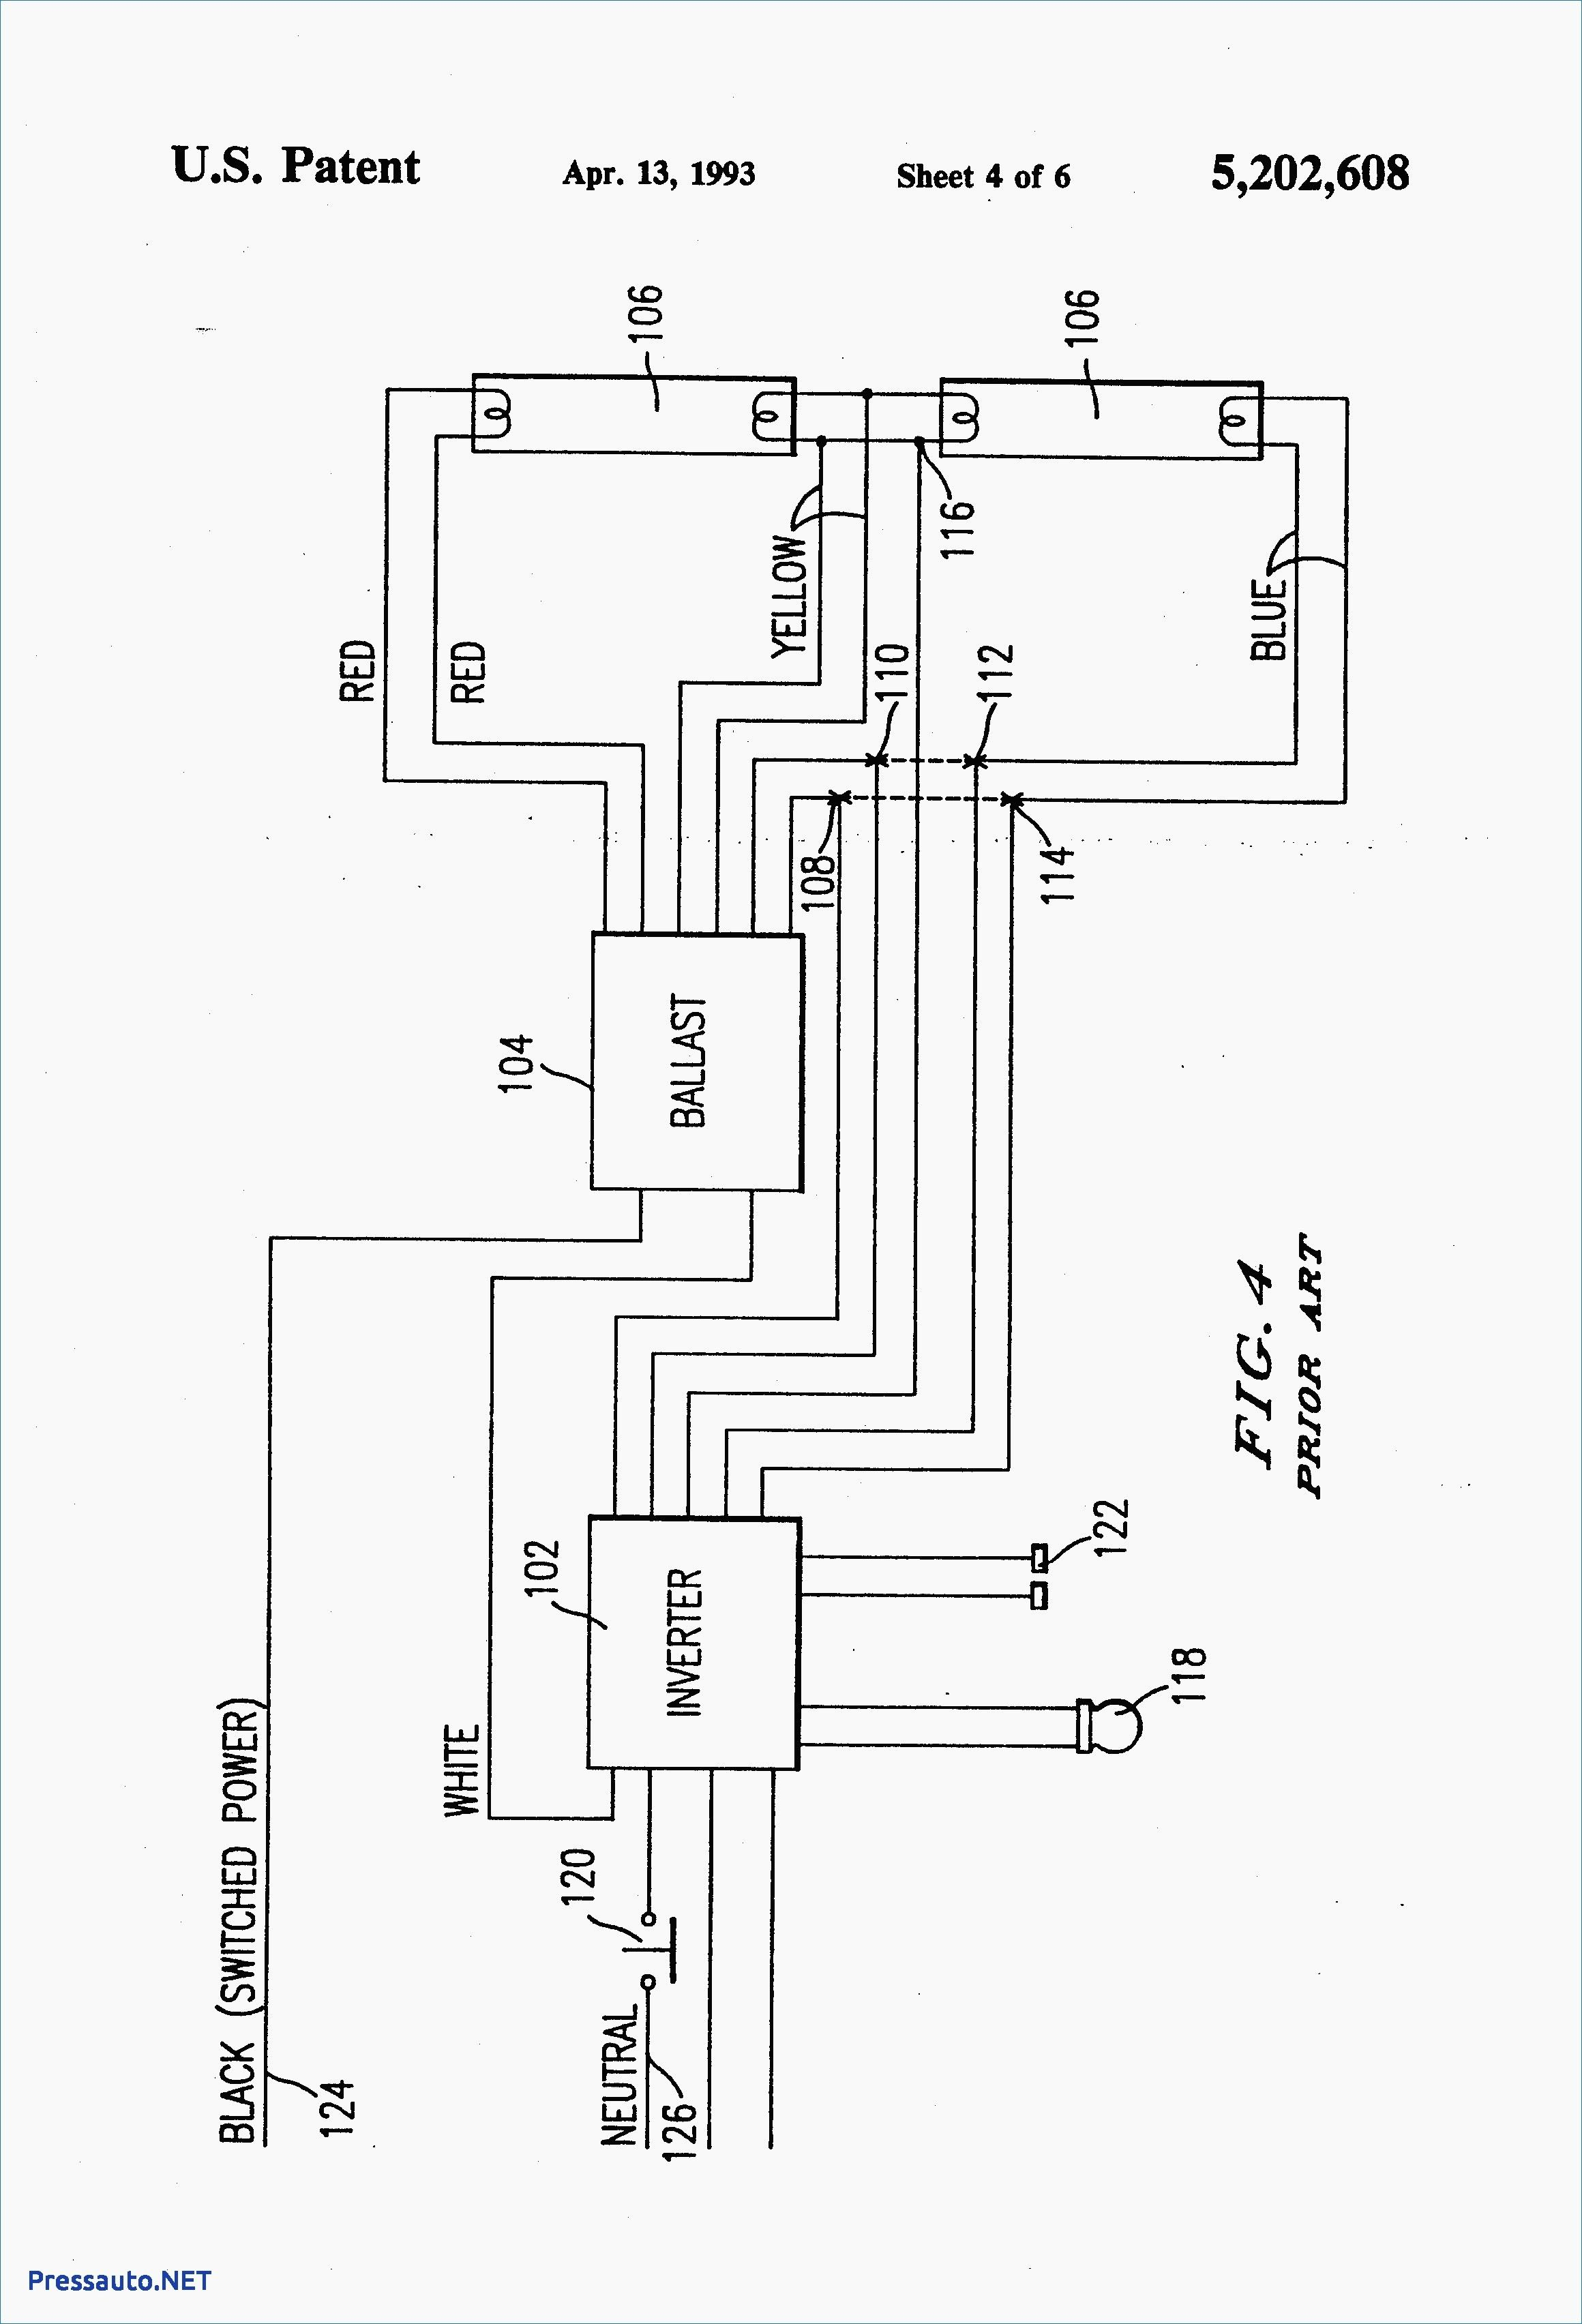 Tork Lighting Contactor Wiring Diagram Kia Zagato